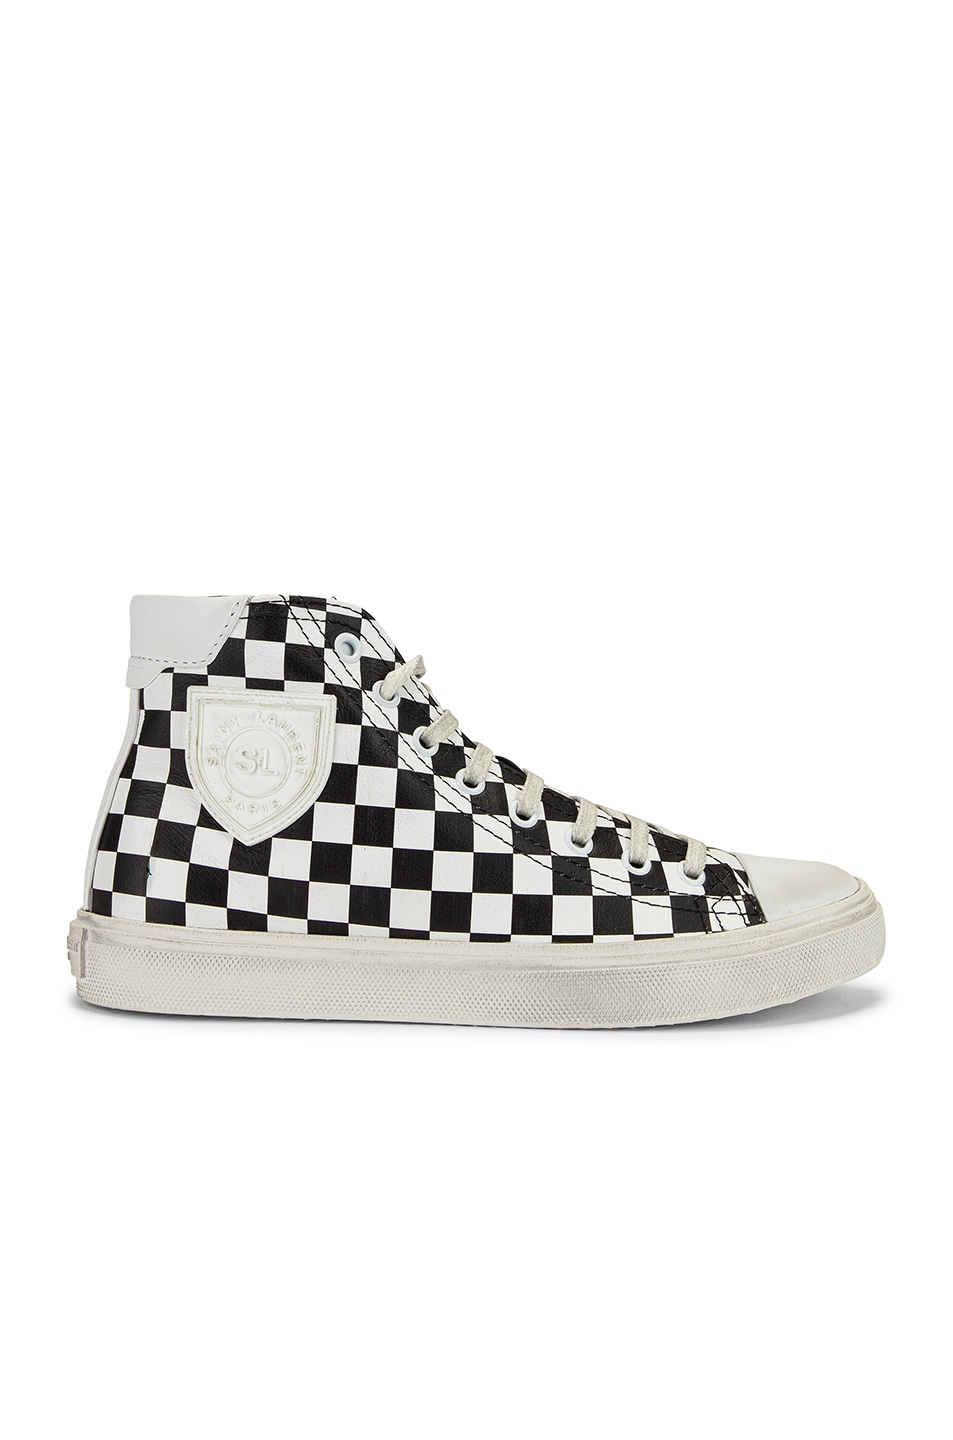 Image 1 of Saint Laurent Bedford Checkered Mid Top Sneakers in Black & White